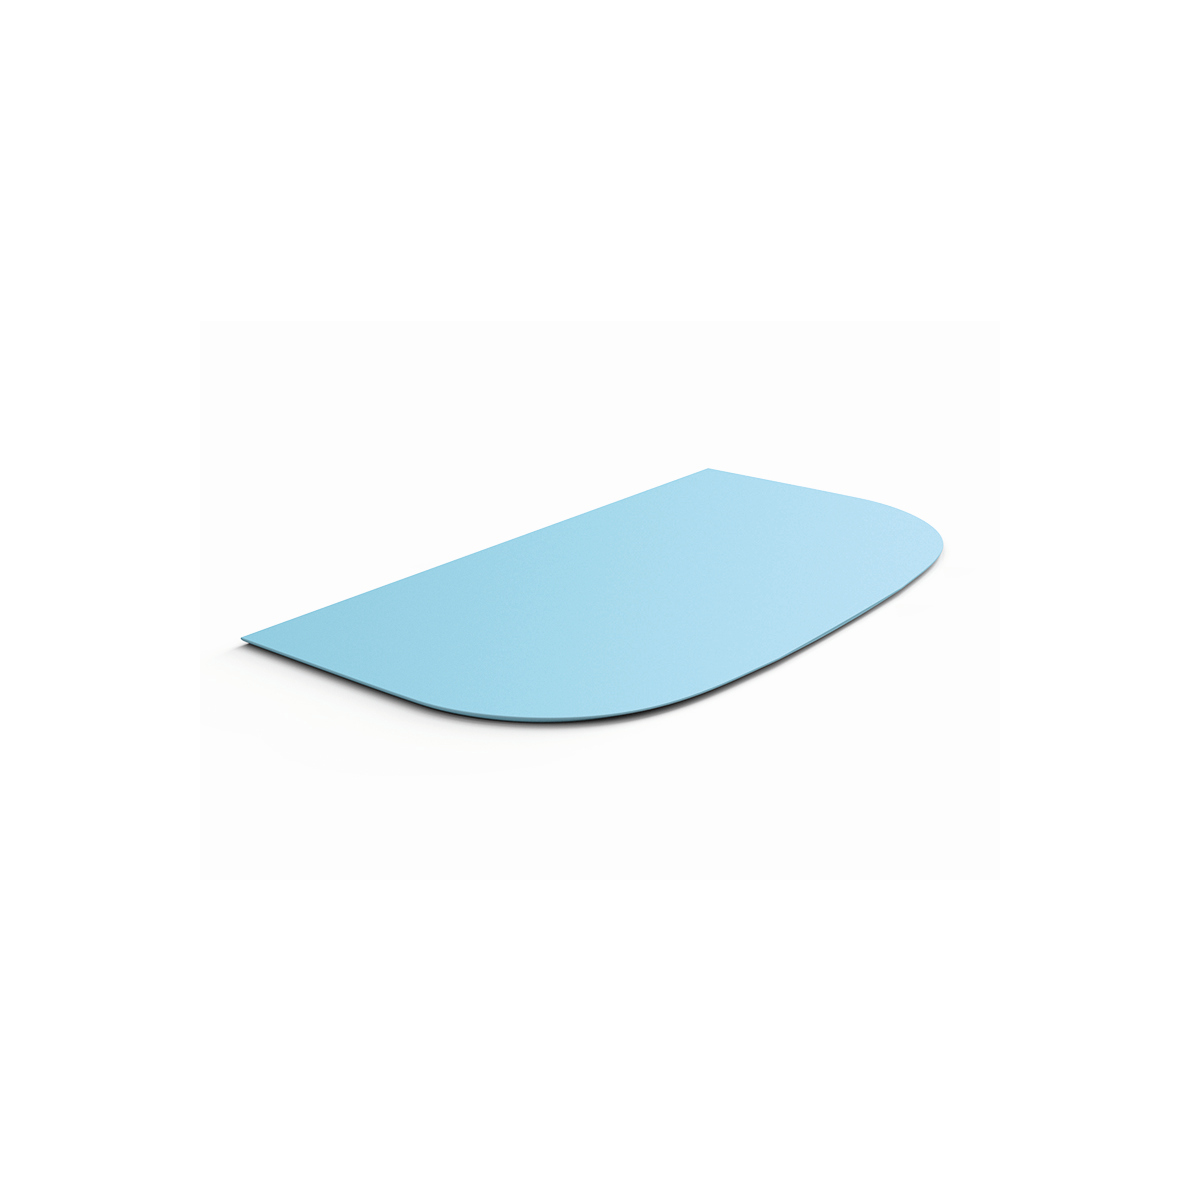 SUREFEED FEEDER MAT BLUE 00001